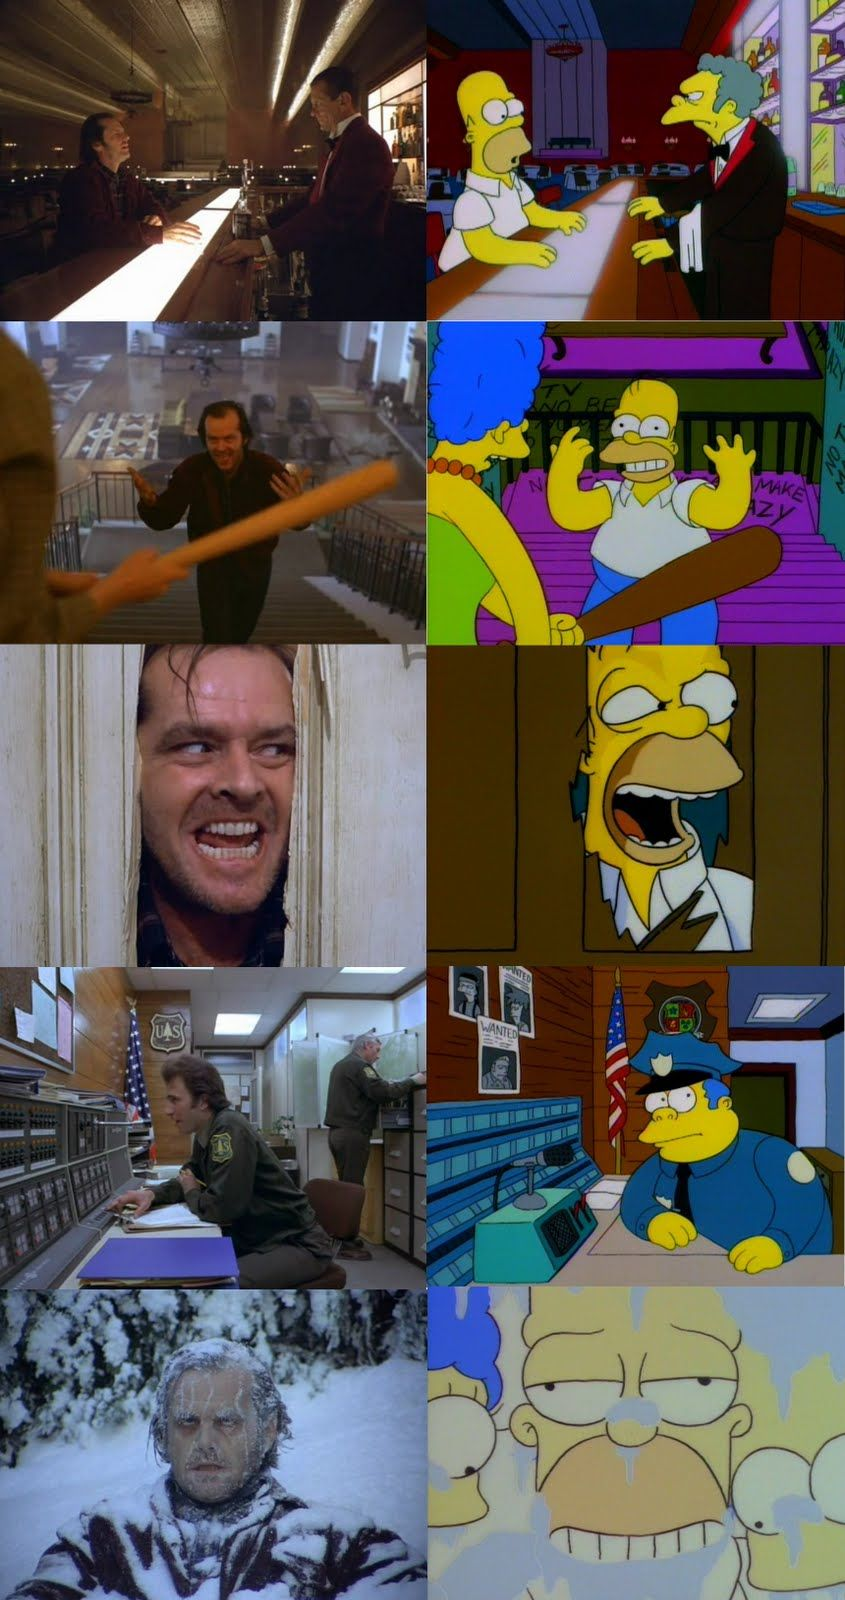 the-simpsons-the-shining-referencia-al-cine-de-Kubrick